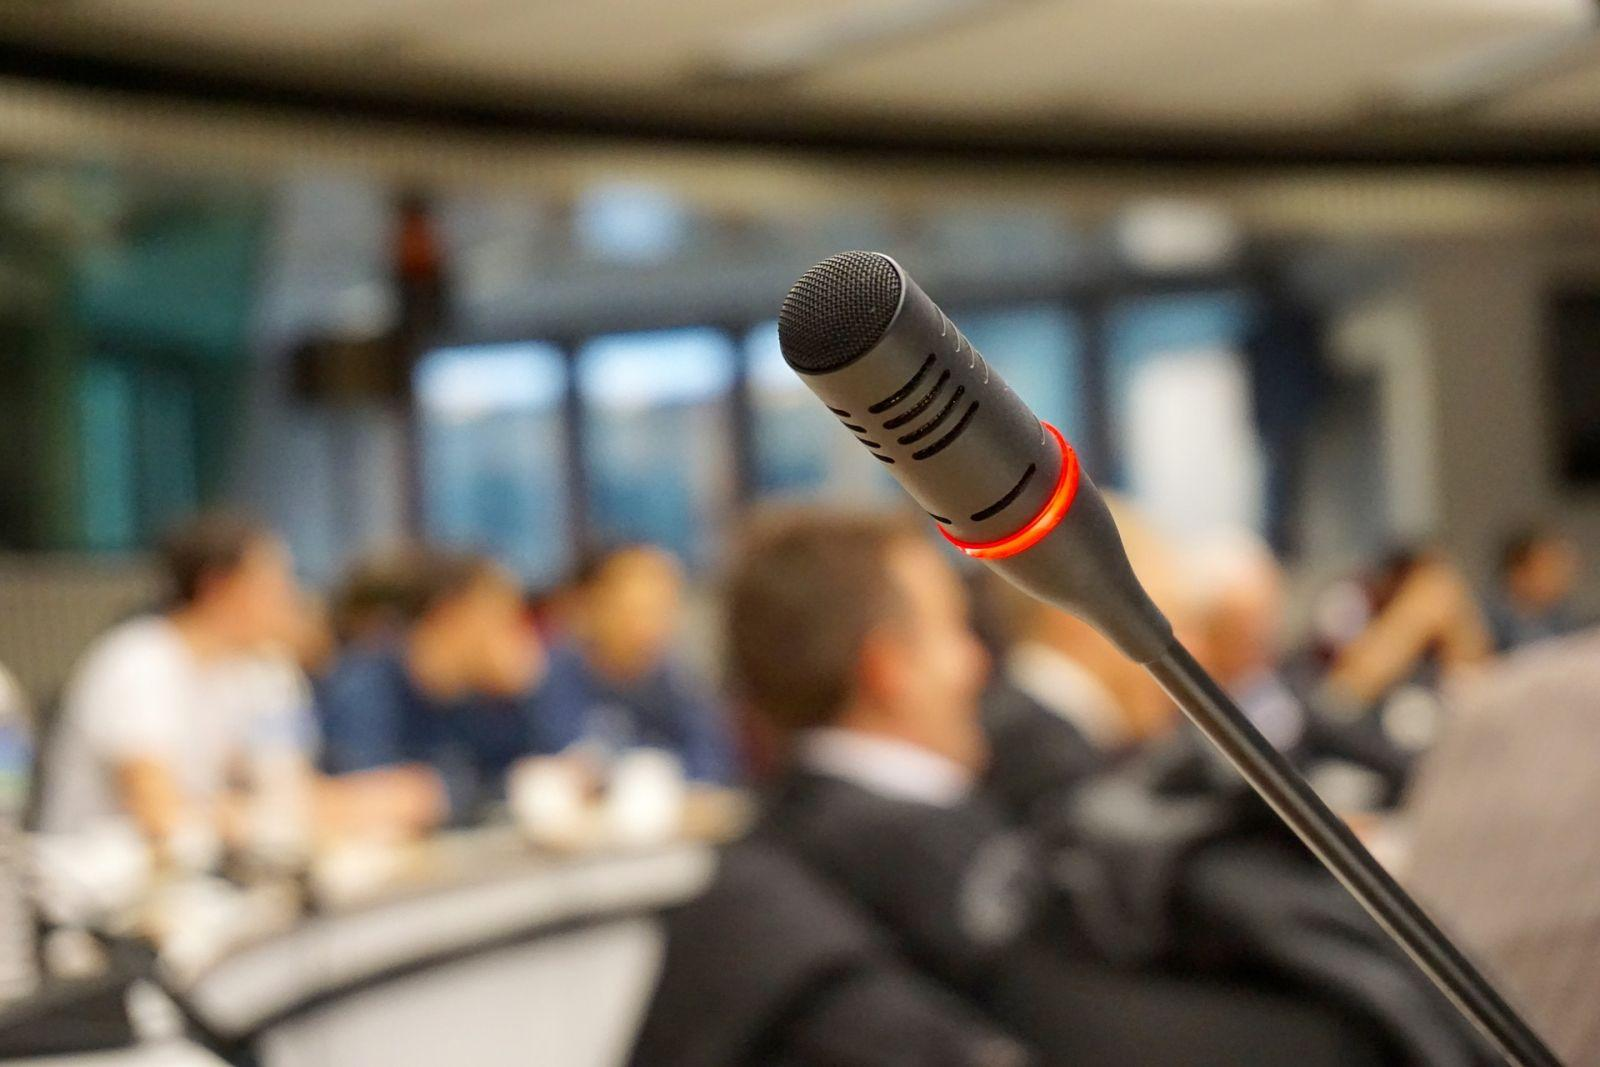 conferencing microphone